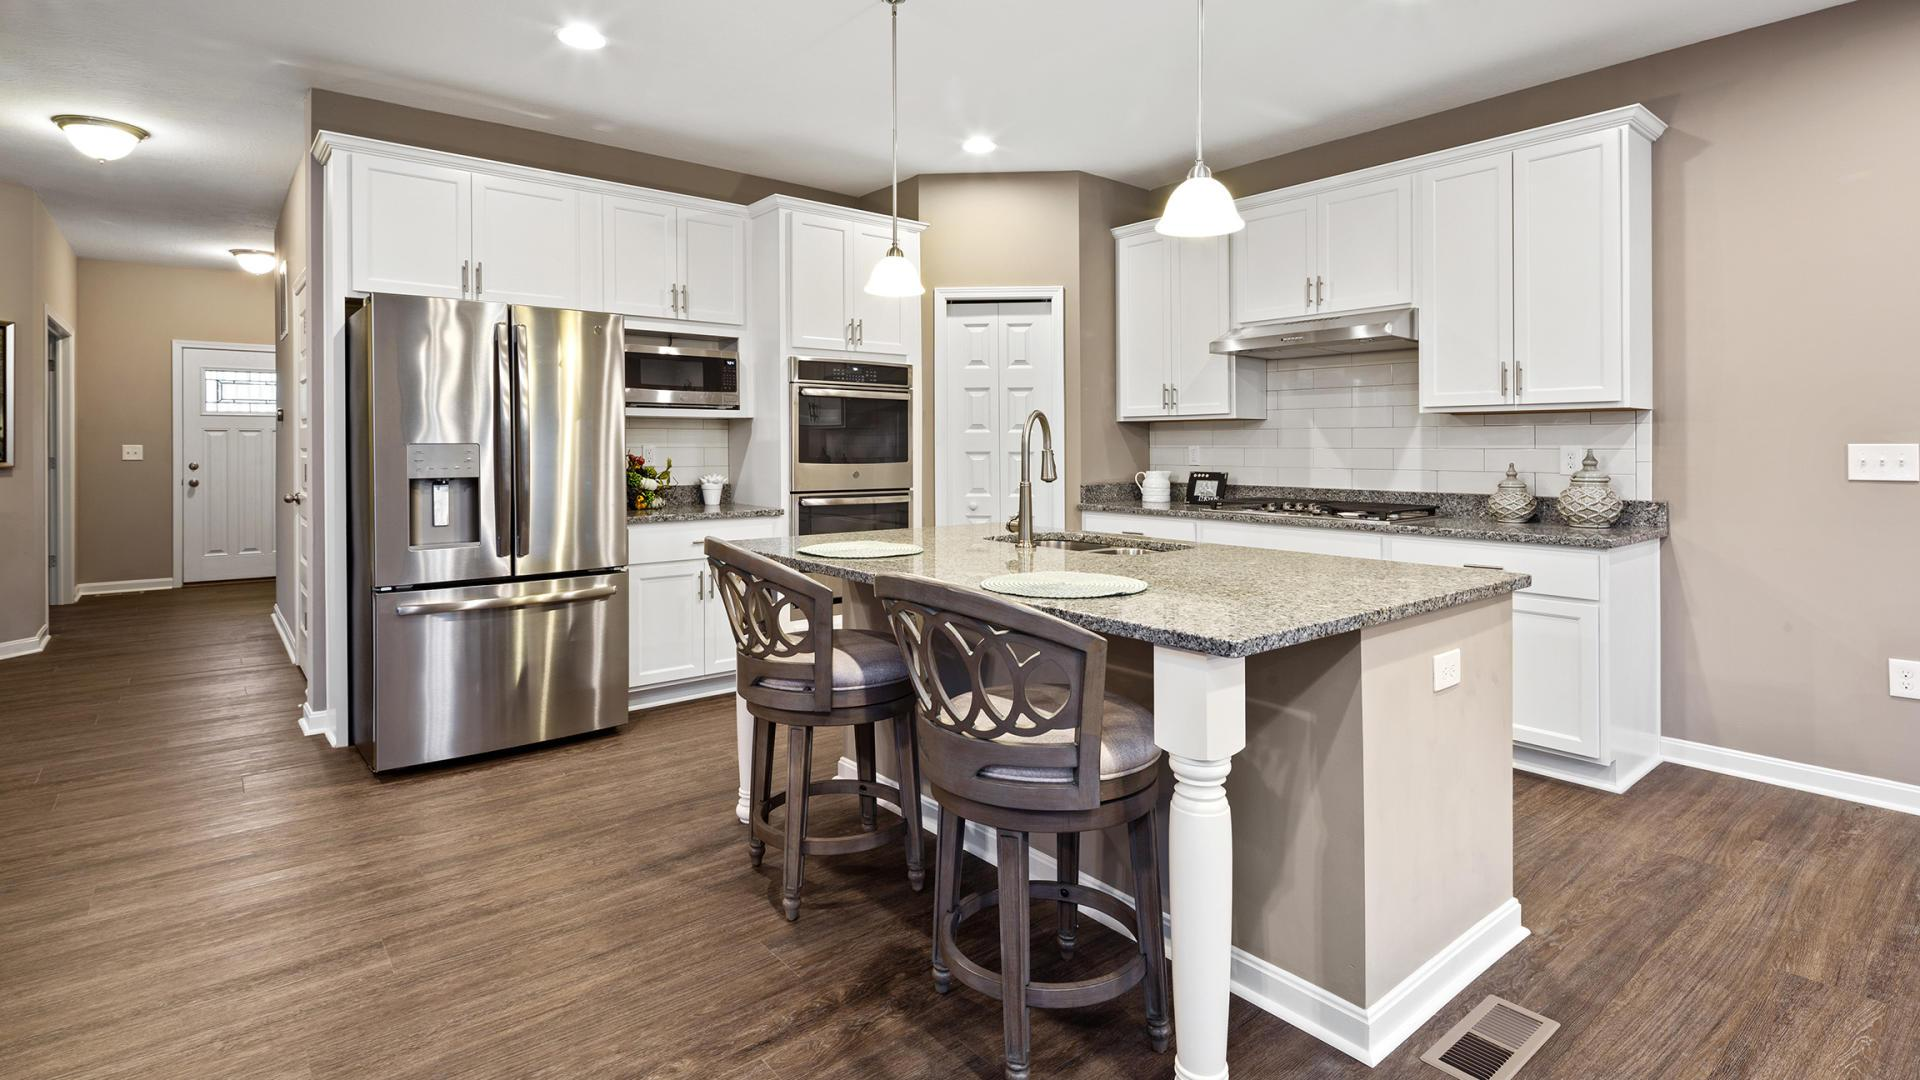 Kitchen featured in the Carlisle By Maronda Homes in Cincinnati, KY